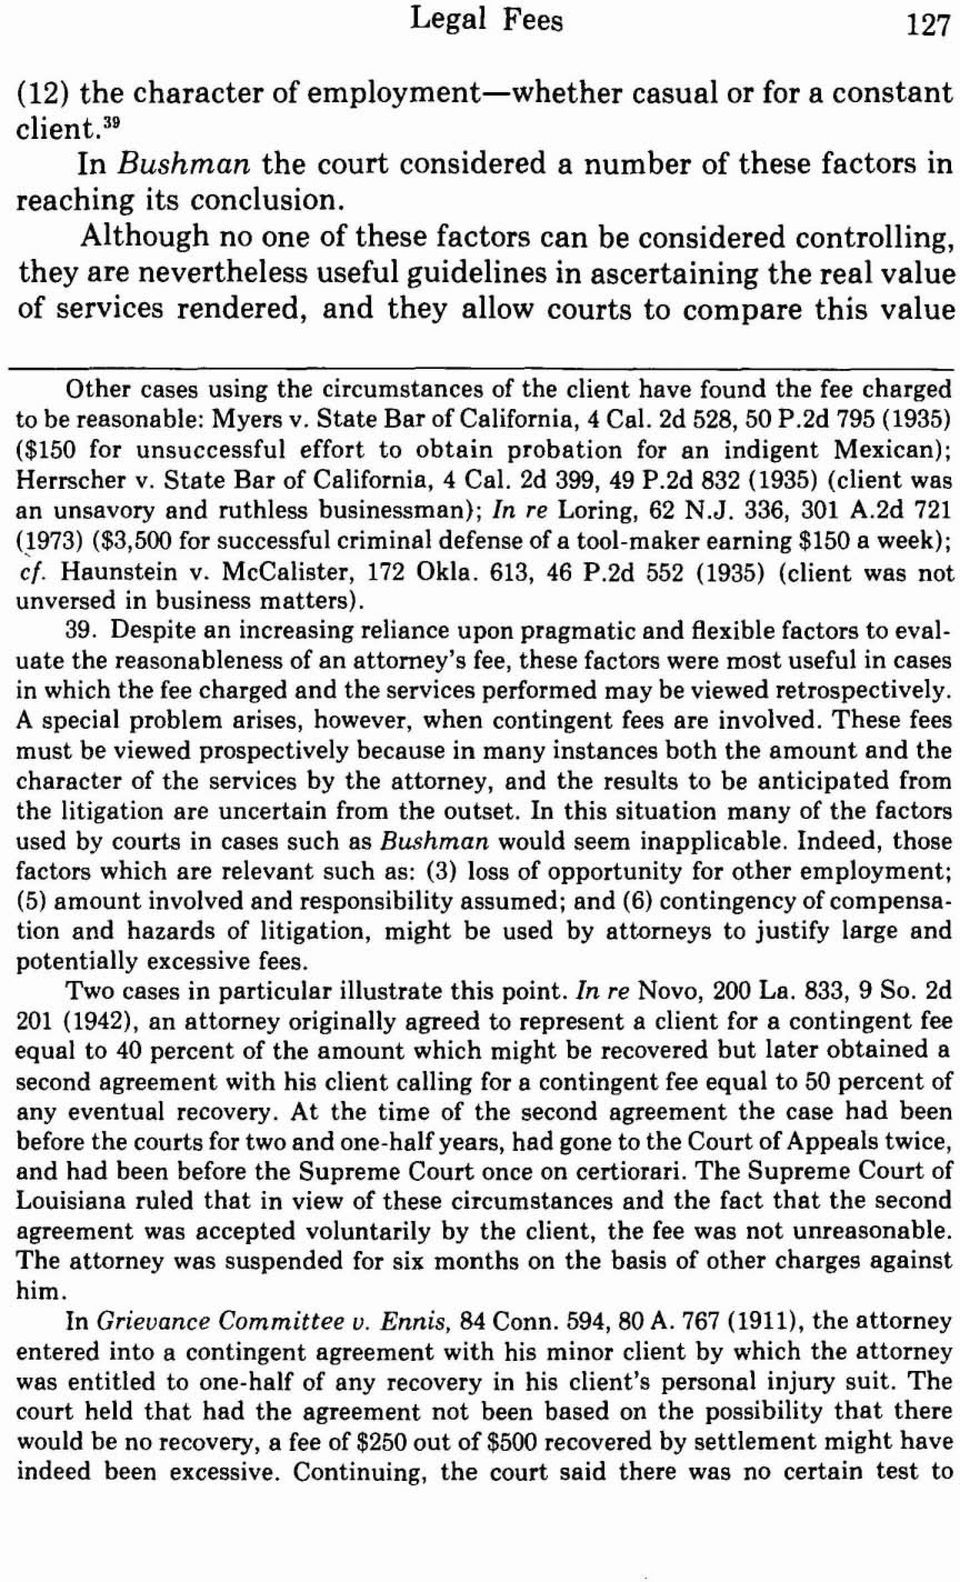 value Other cases using the circumstances of the client have found the fee charged to be reasonable: Myers v. State Bar of California, 4 Cal. 2d 528,50 P.